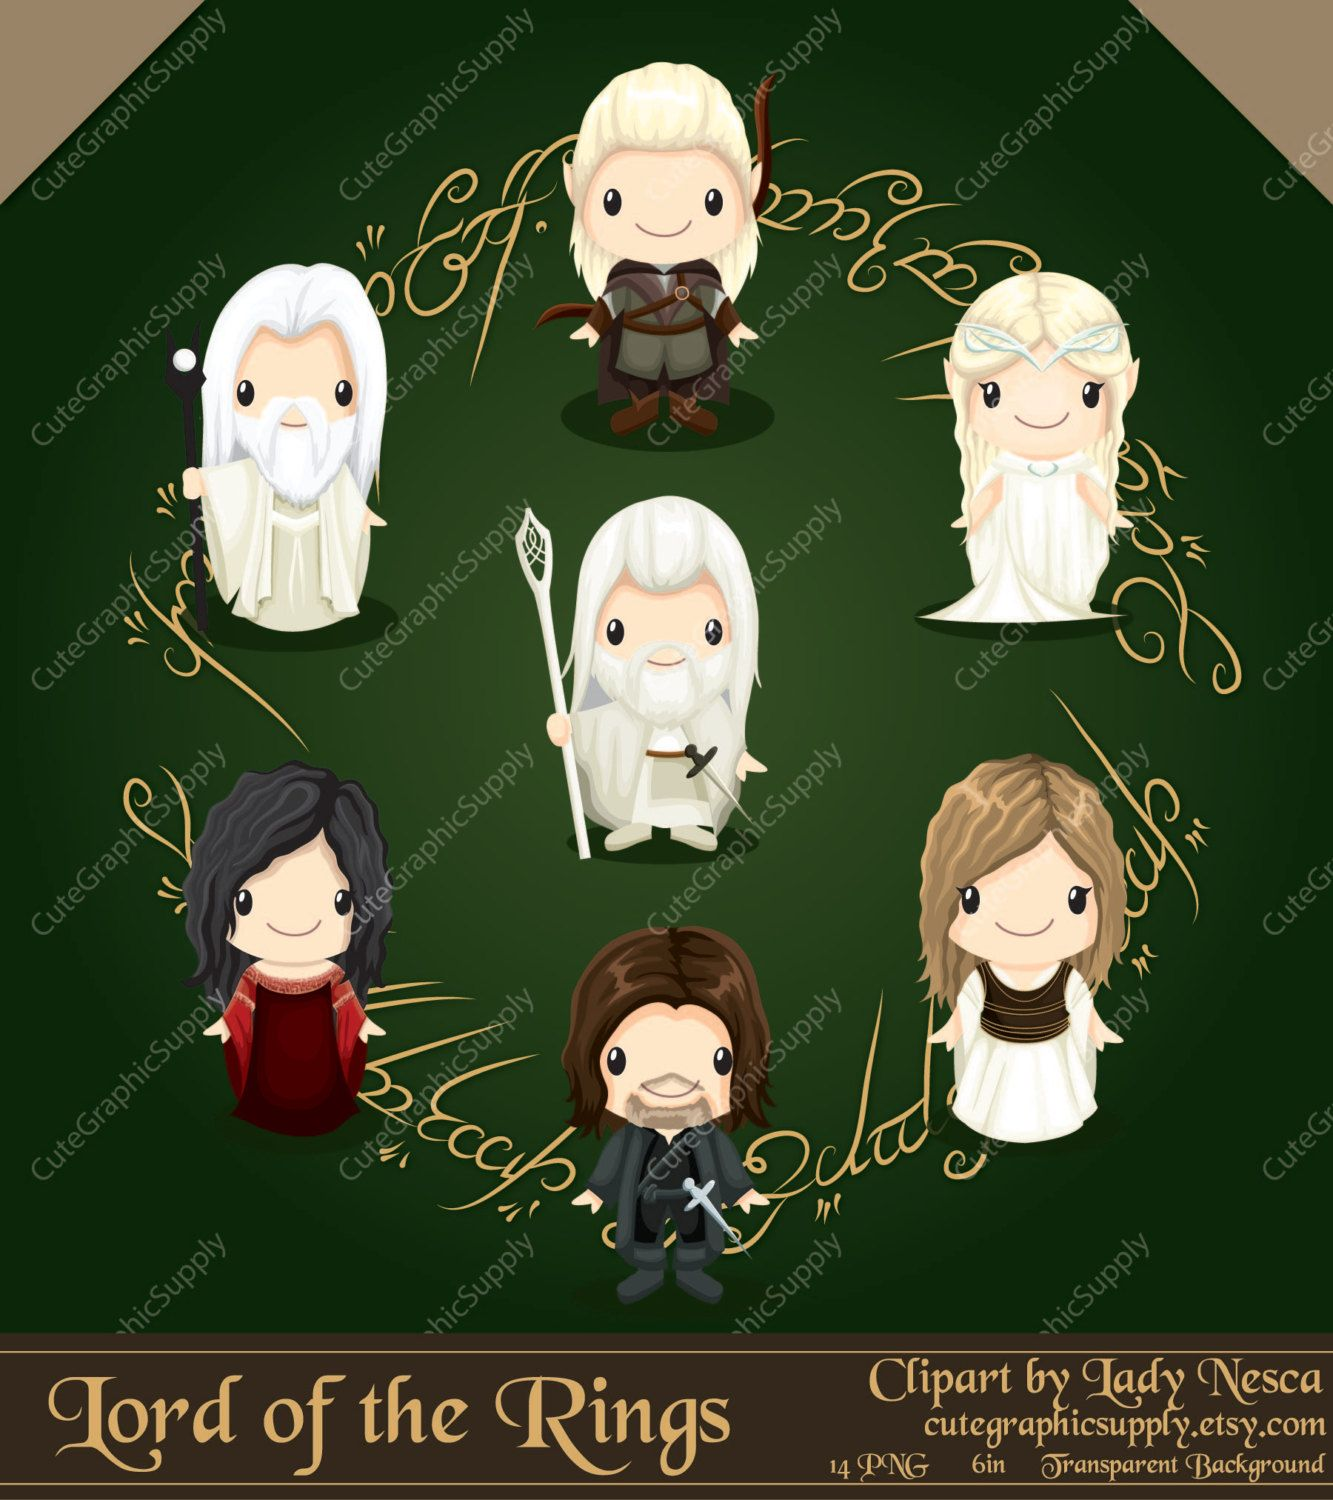 Lord of the Rings inspired clipart hobbit by.